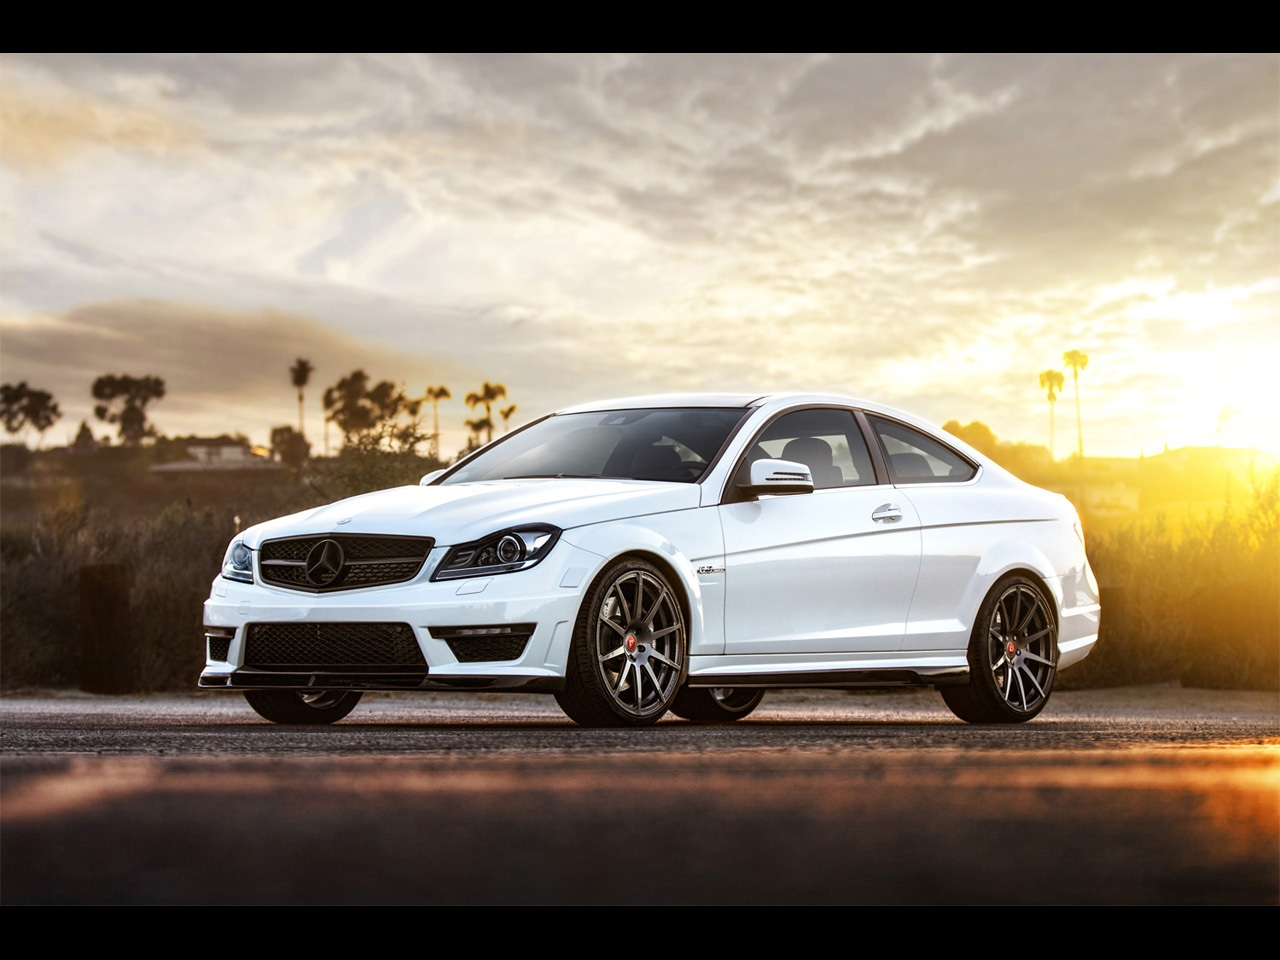 2013 Mercedes Benz C63 Amg Front Angle Static HD Desktop wallpaper, images and photos